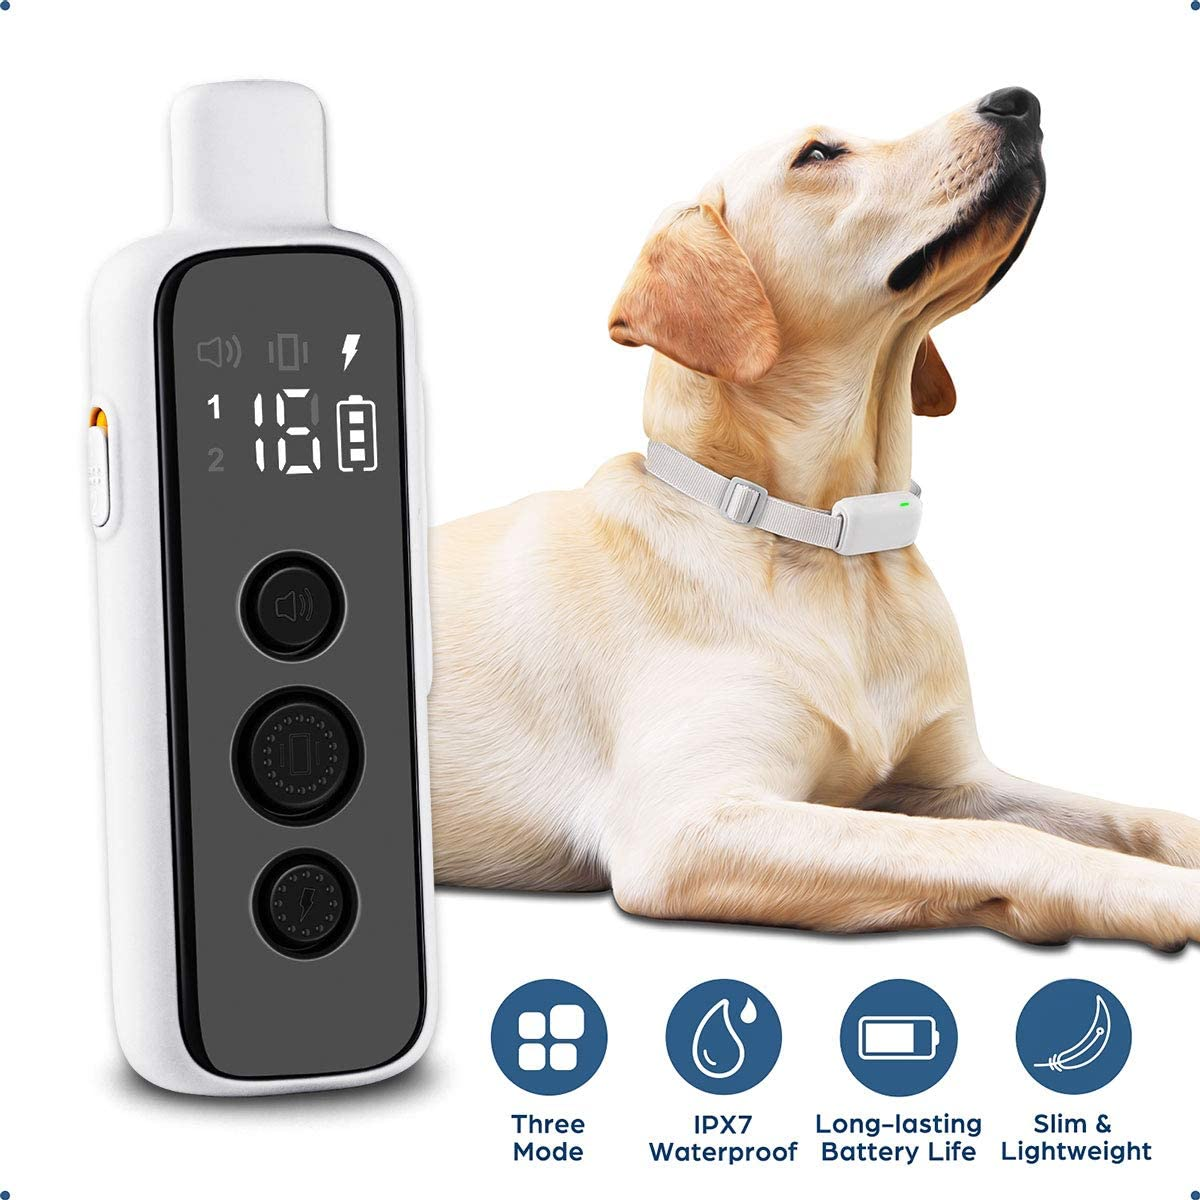 Monja Dog Training Collar, Rechargeable Shock Collar, IPX7 Waterproof Remote Trainer with 3 Training Modes, Tone, Vibration and Safety Shock for Small, Medium, and Large Breeds, Dog Training Kit